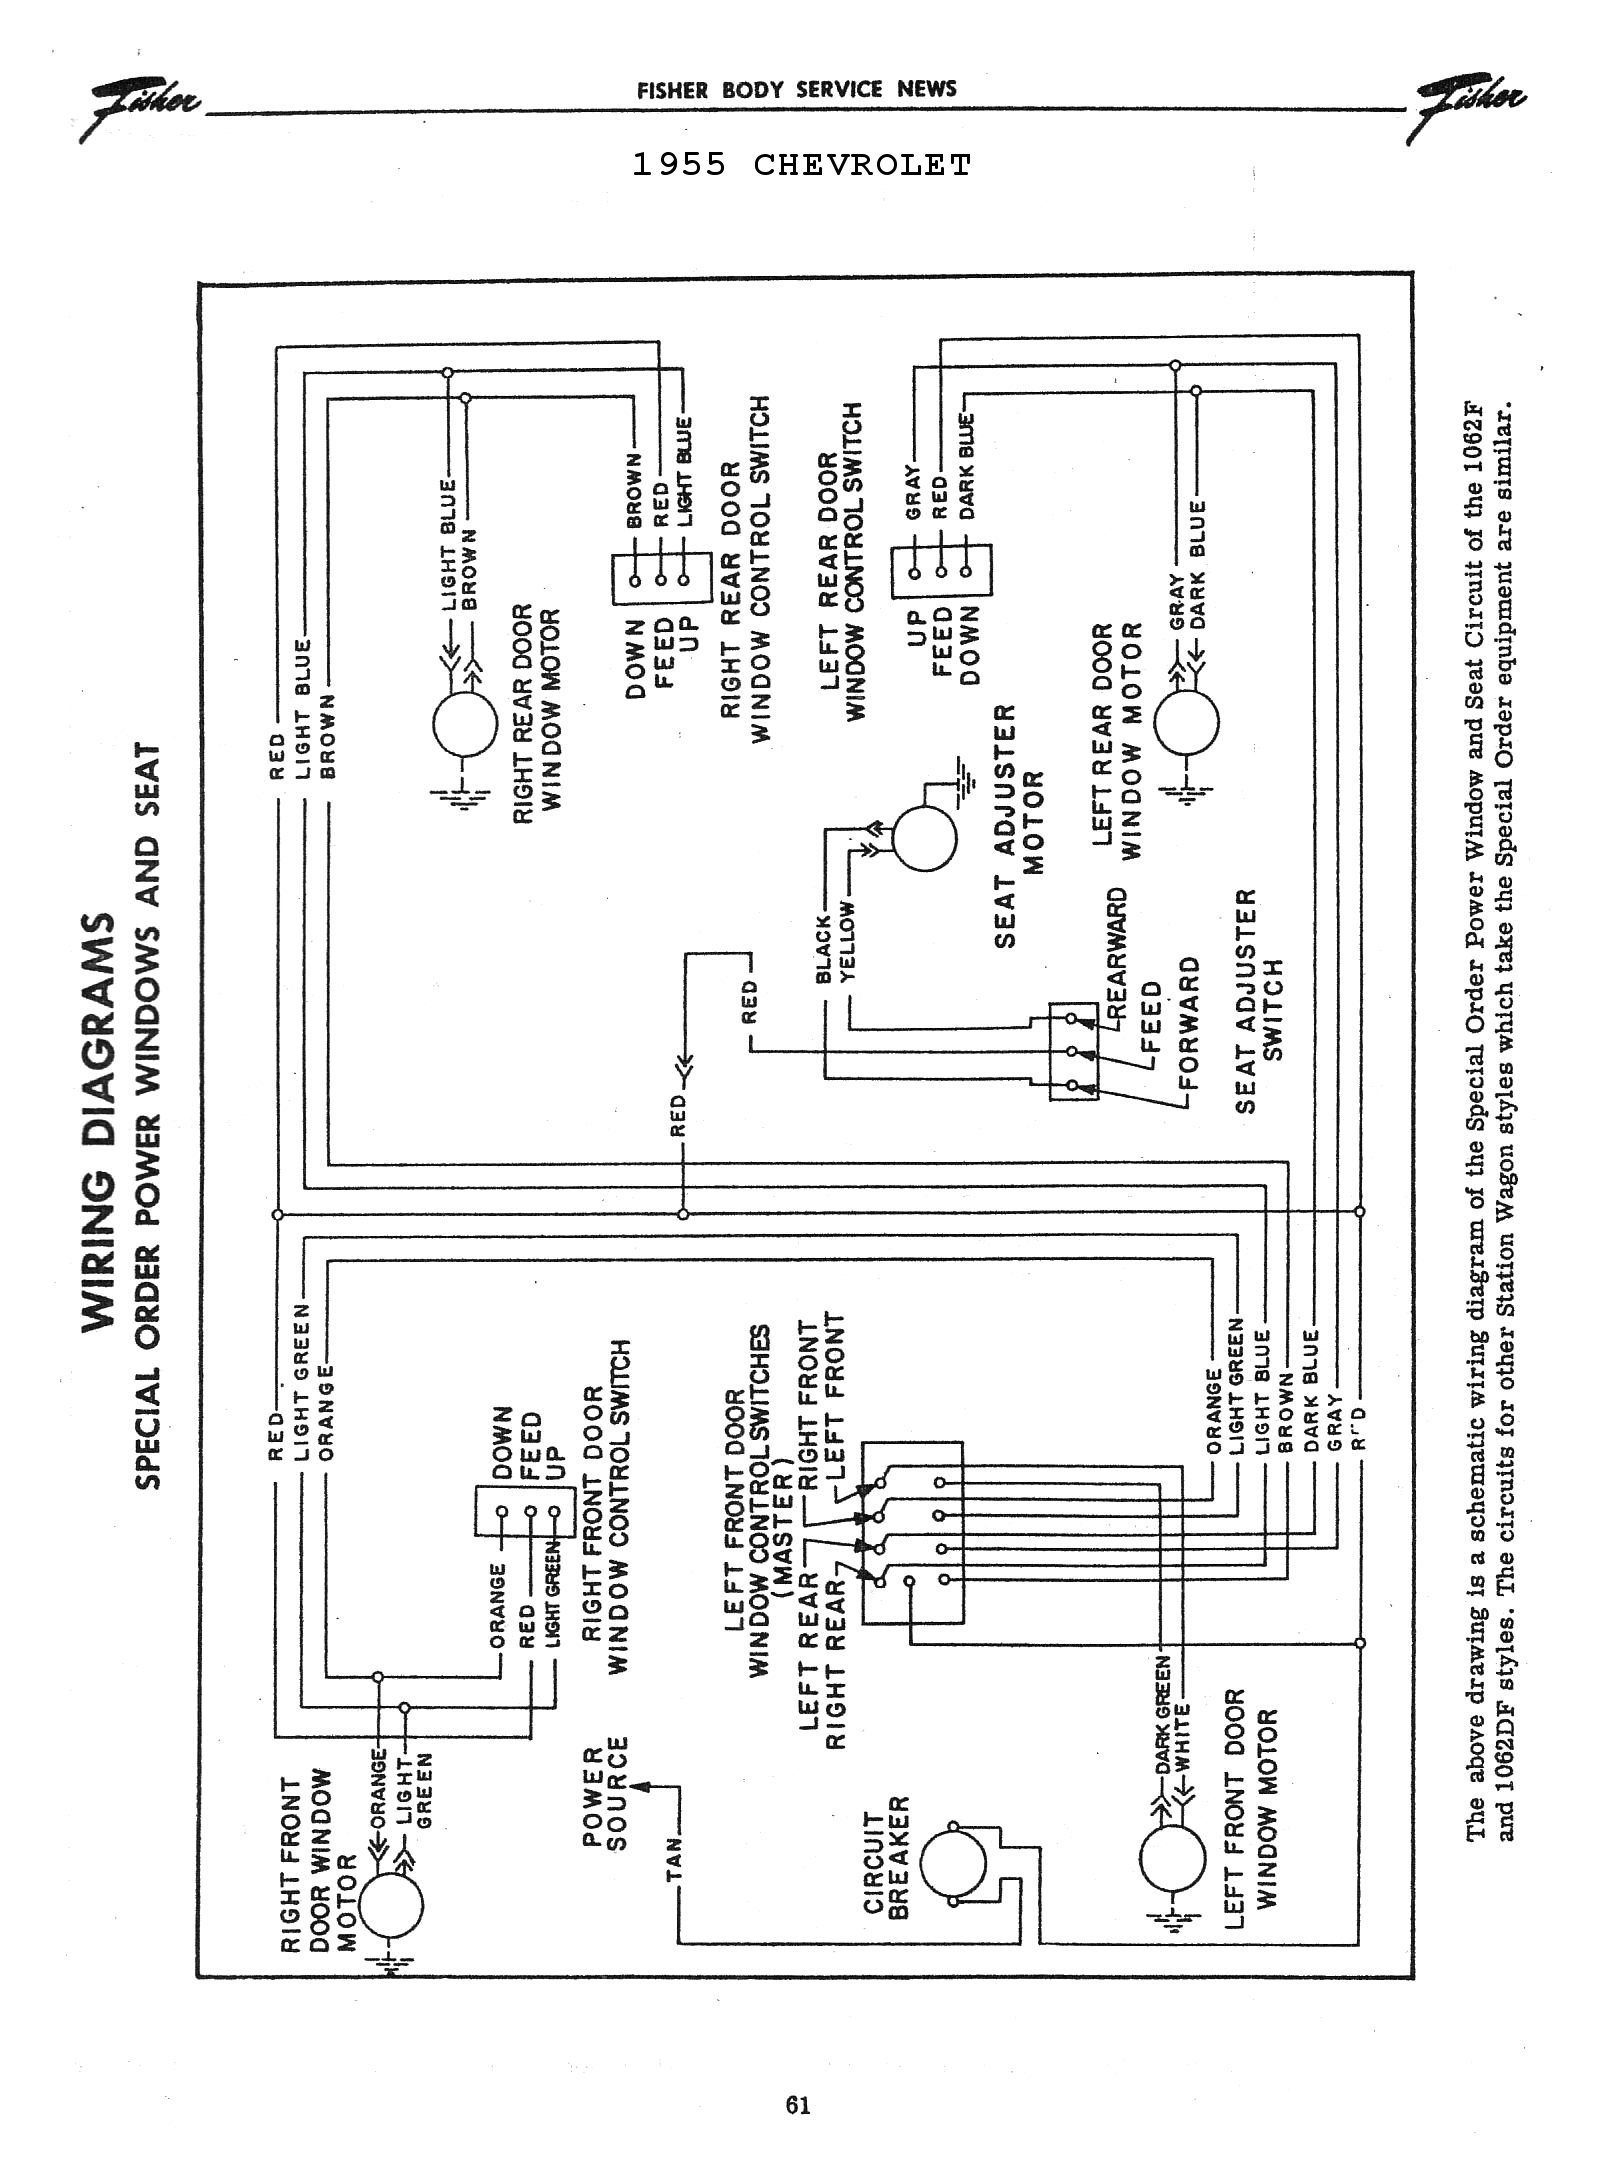 Chevy Wiring Diagrams The Schematic Diagram Of Traffic Light Circuit In Update Version 1955 Power Windows Seats Overdrive